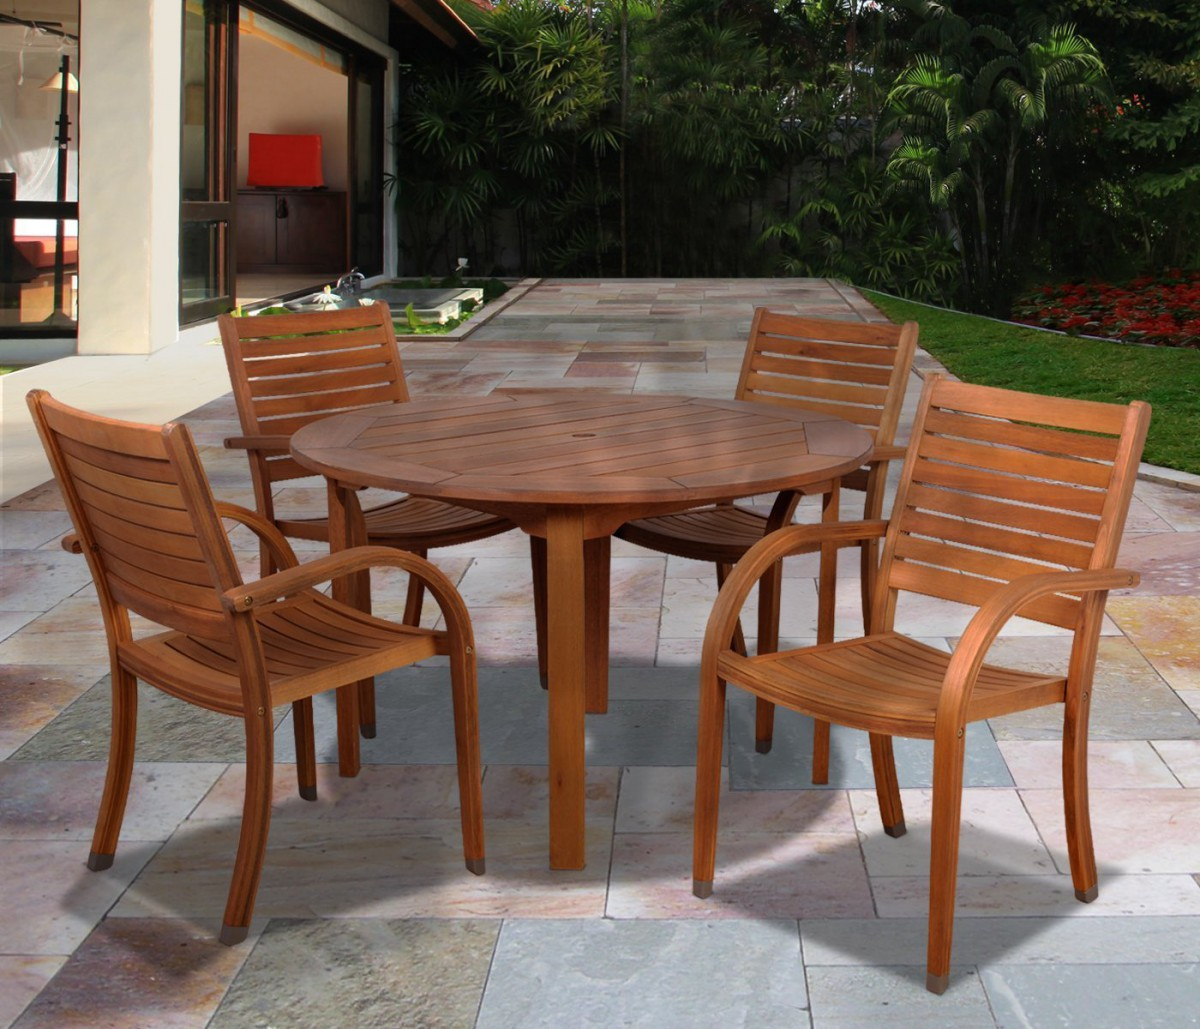 Amazonia arizona 5 piece wood outdoor dining set with 47 for Patio furniture table set